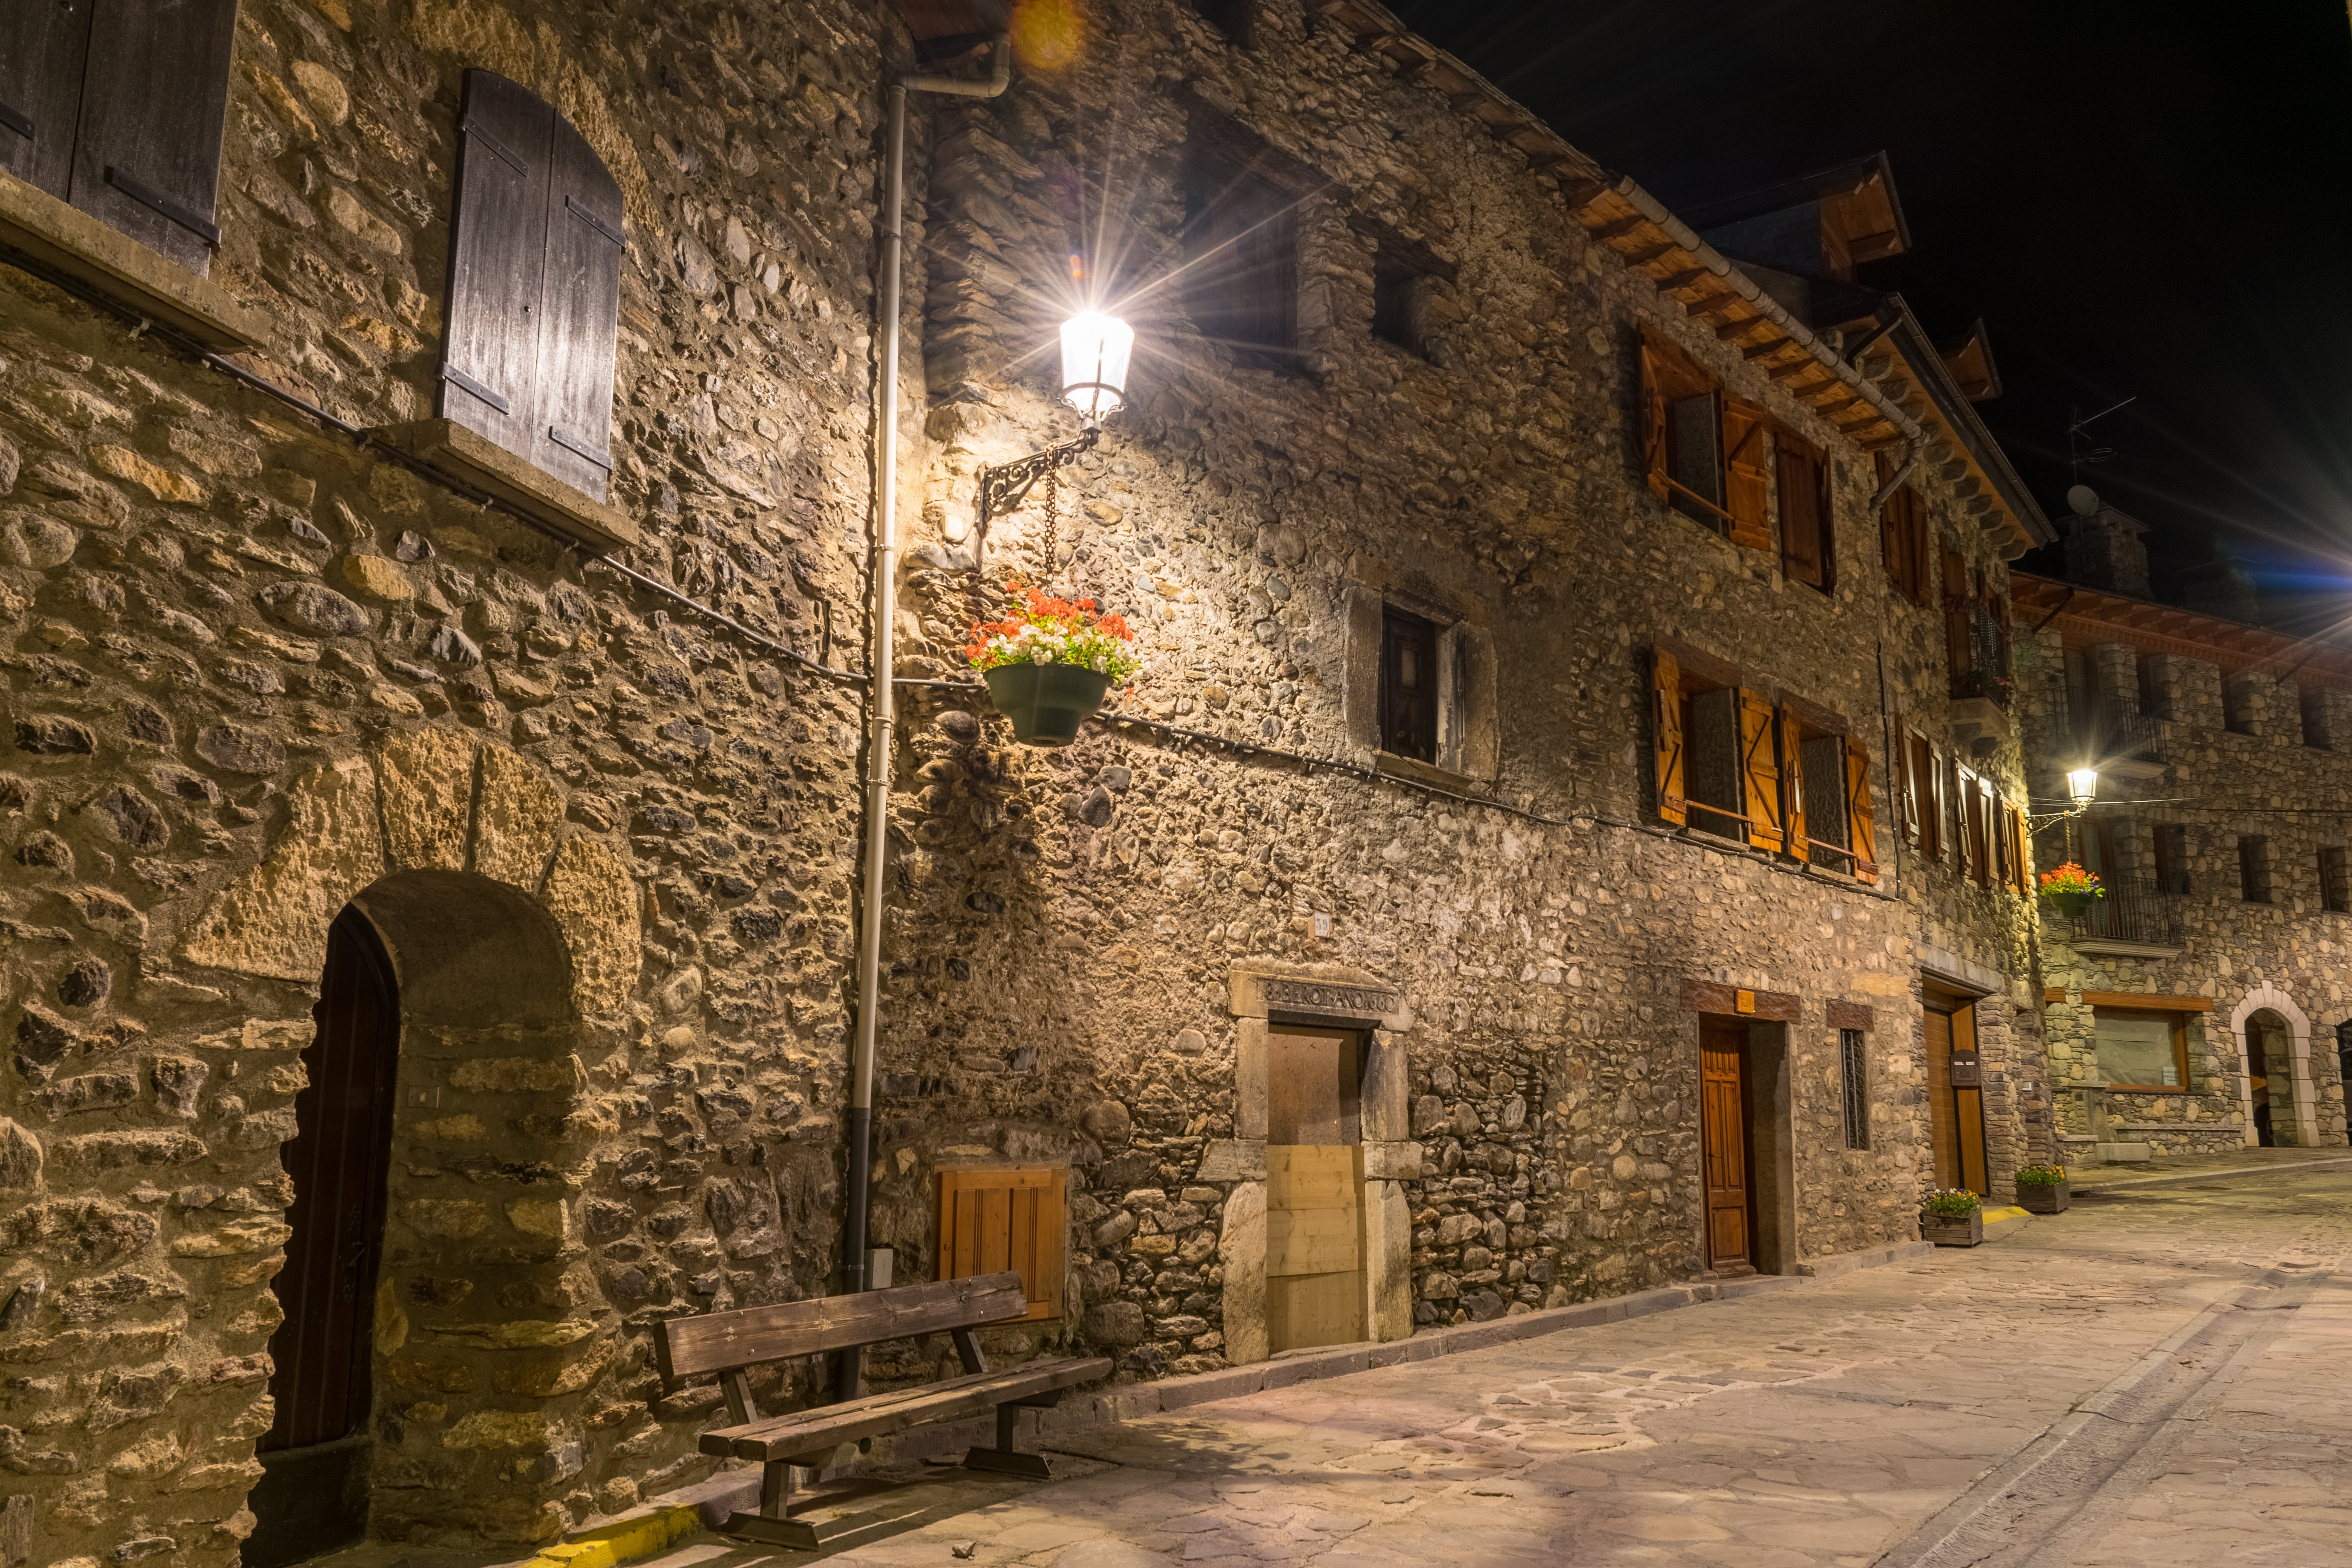 Turned on Outdoor Lamp during Nighttime, Alley, Architecture, Buildings, City, HQ Photo